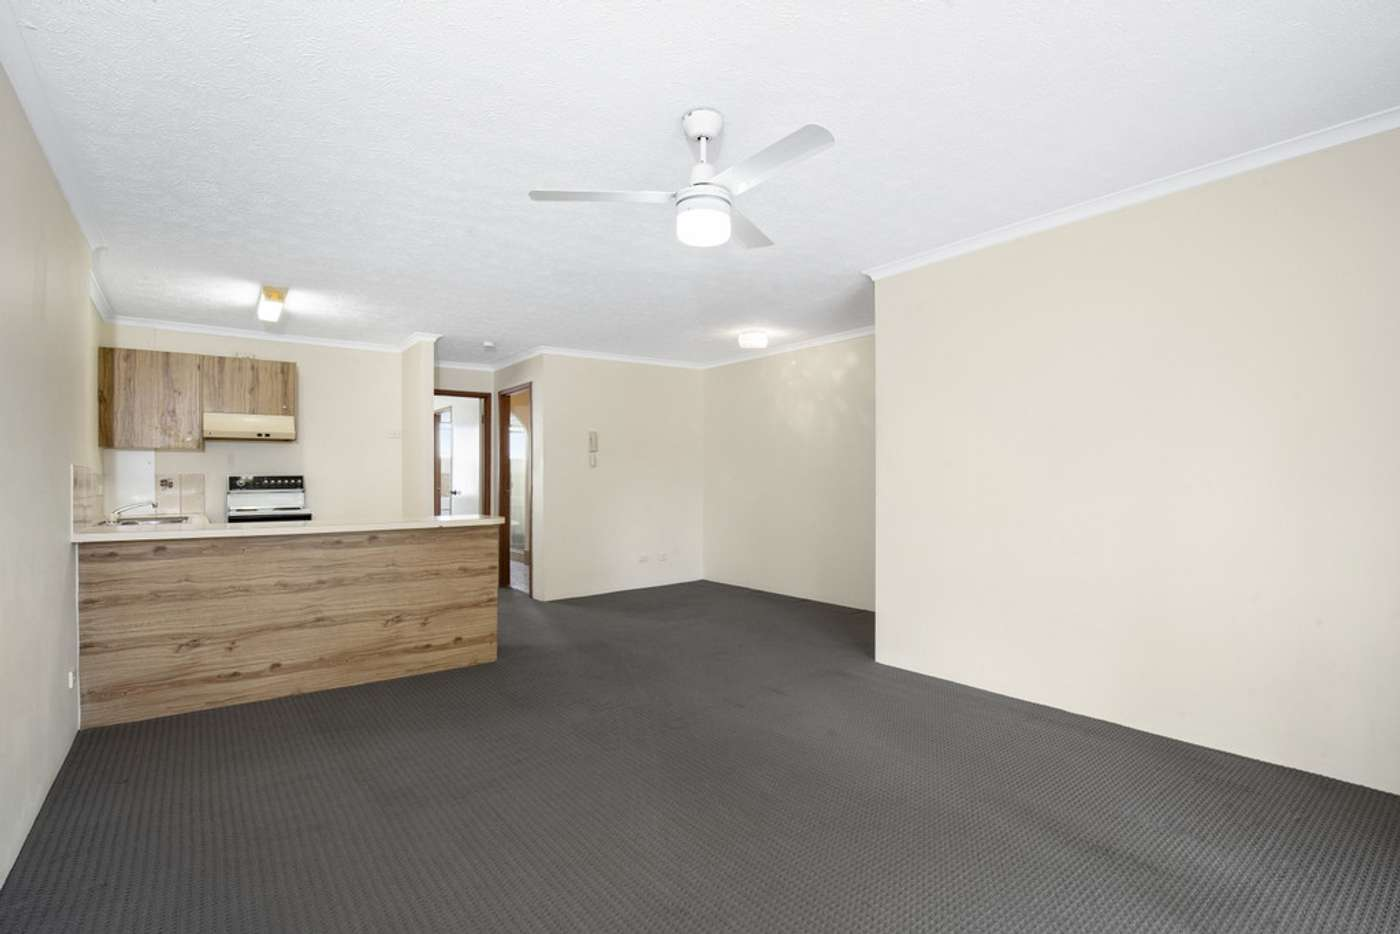 Sixth view of Homely unit listing, 7/215 Surf Parade, Broadbeach QLD 4218